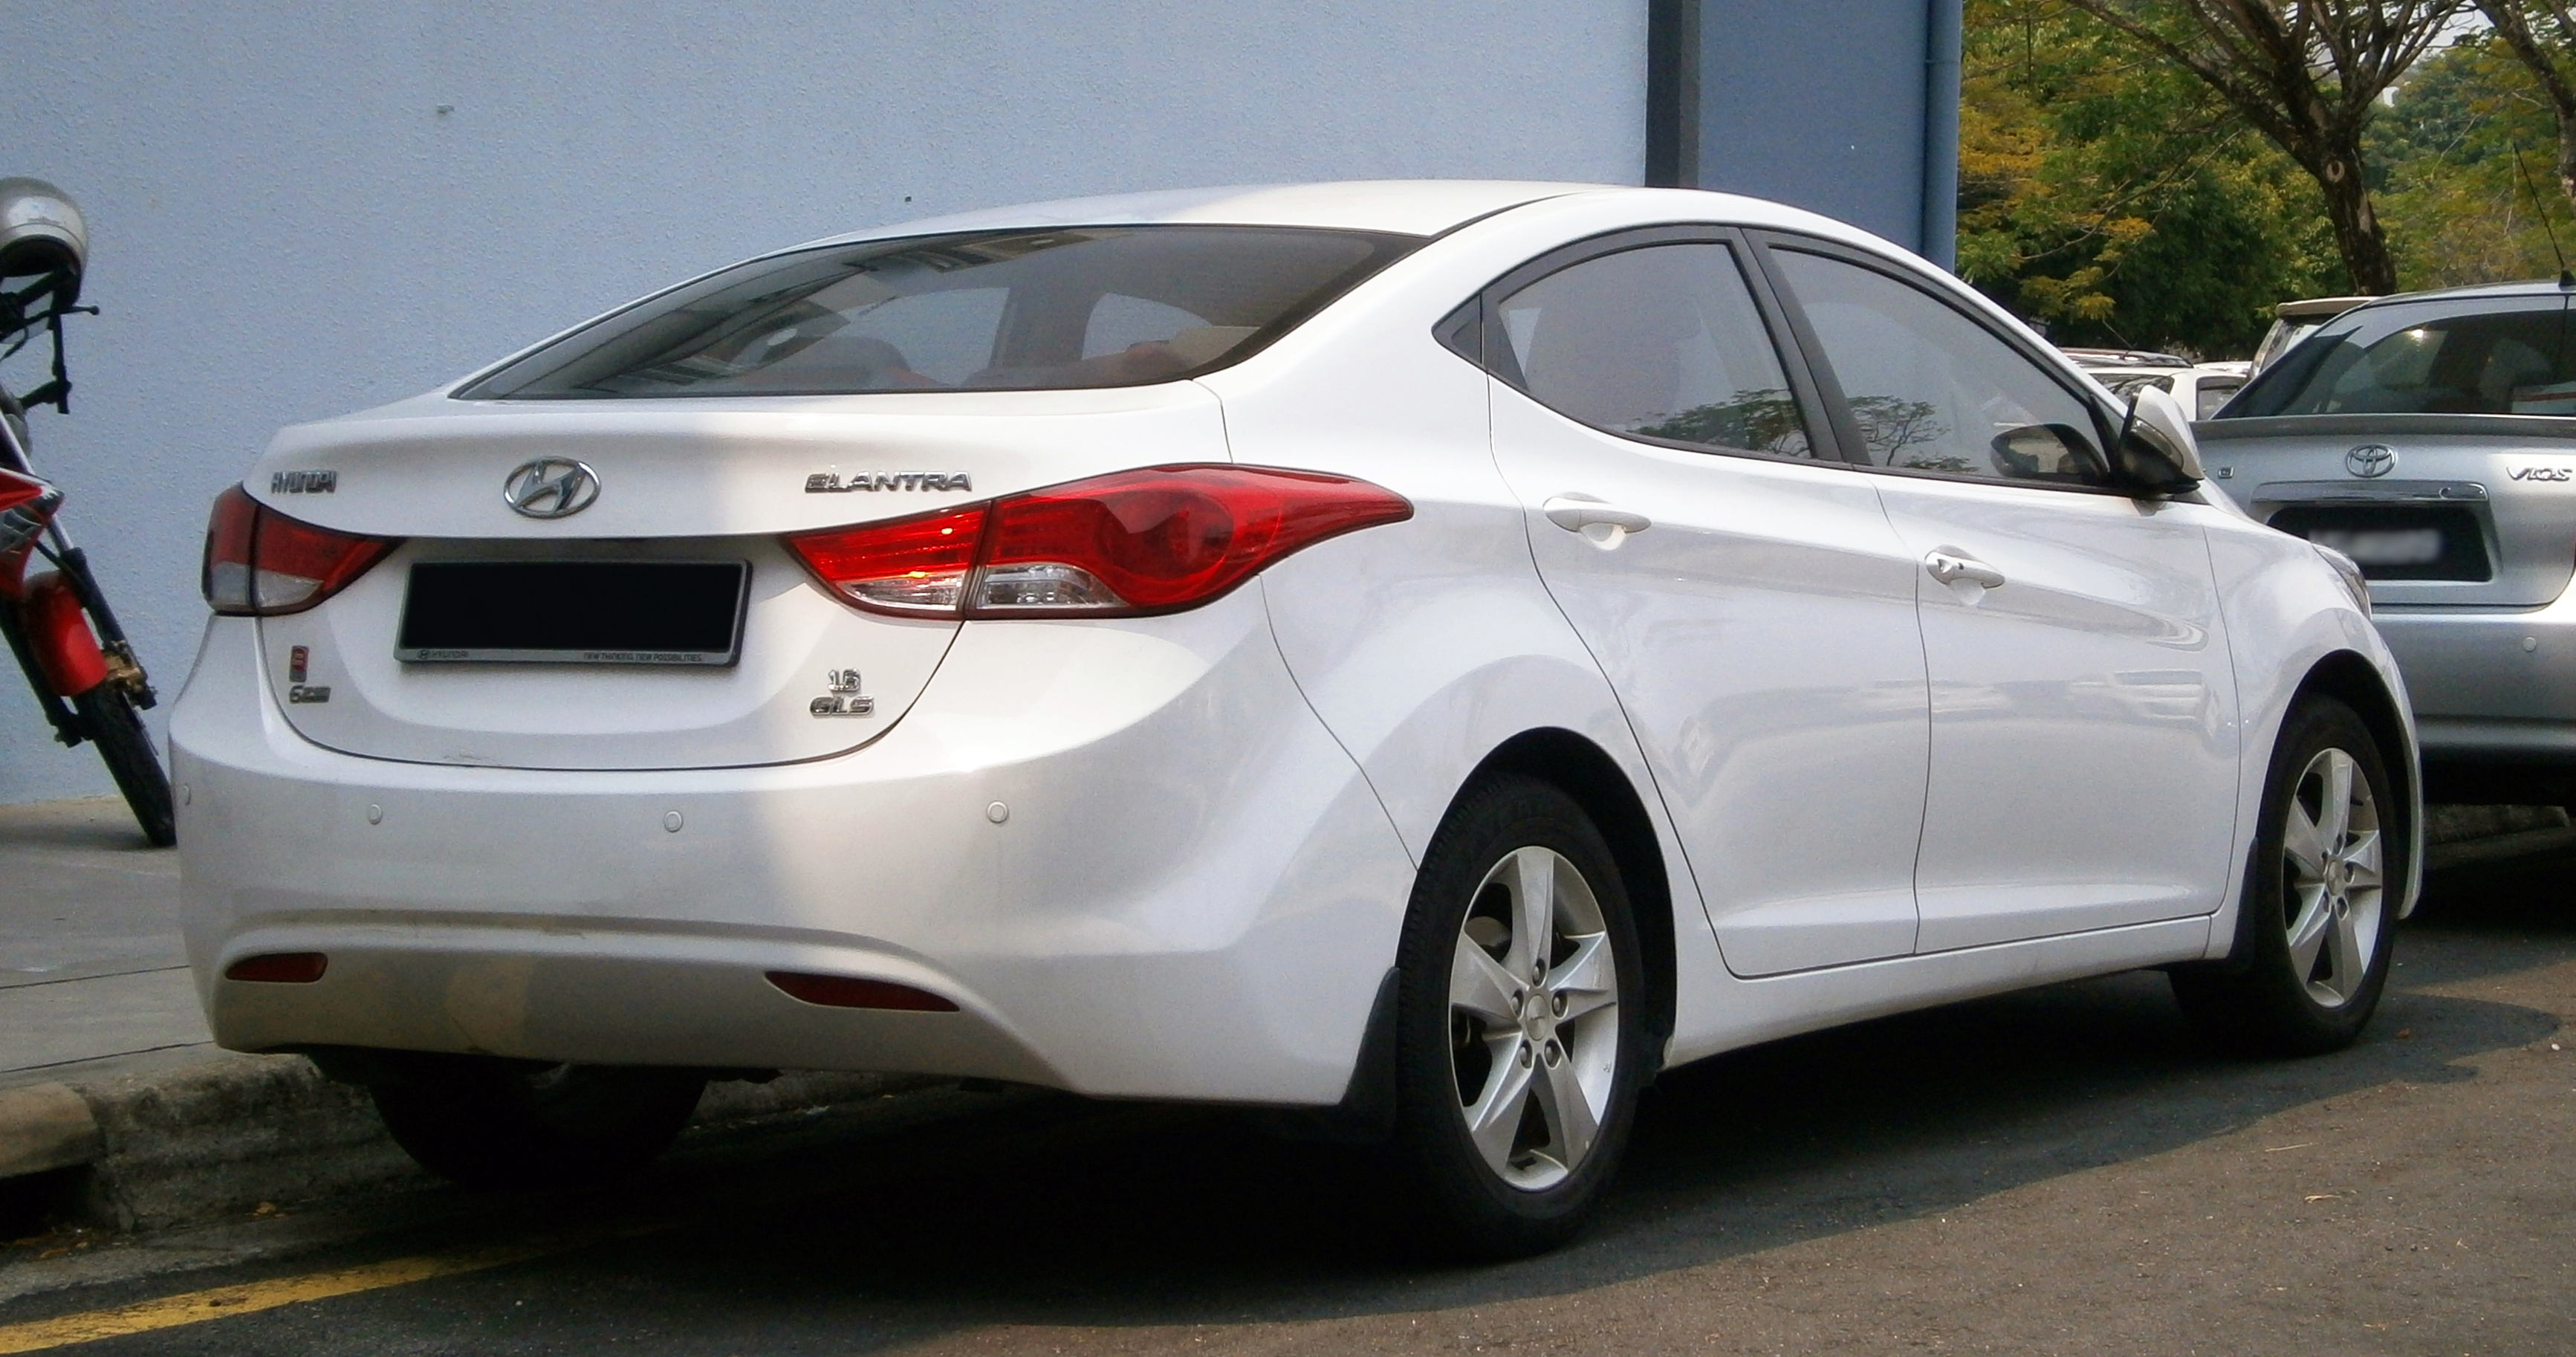 File:2013 Inokom (Hyundai) Elantra 1.6 GLS (Standard Or High Spec)